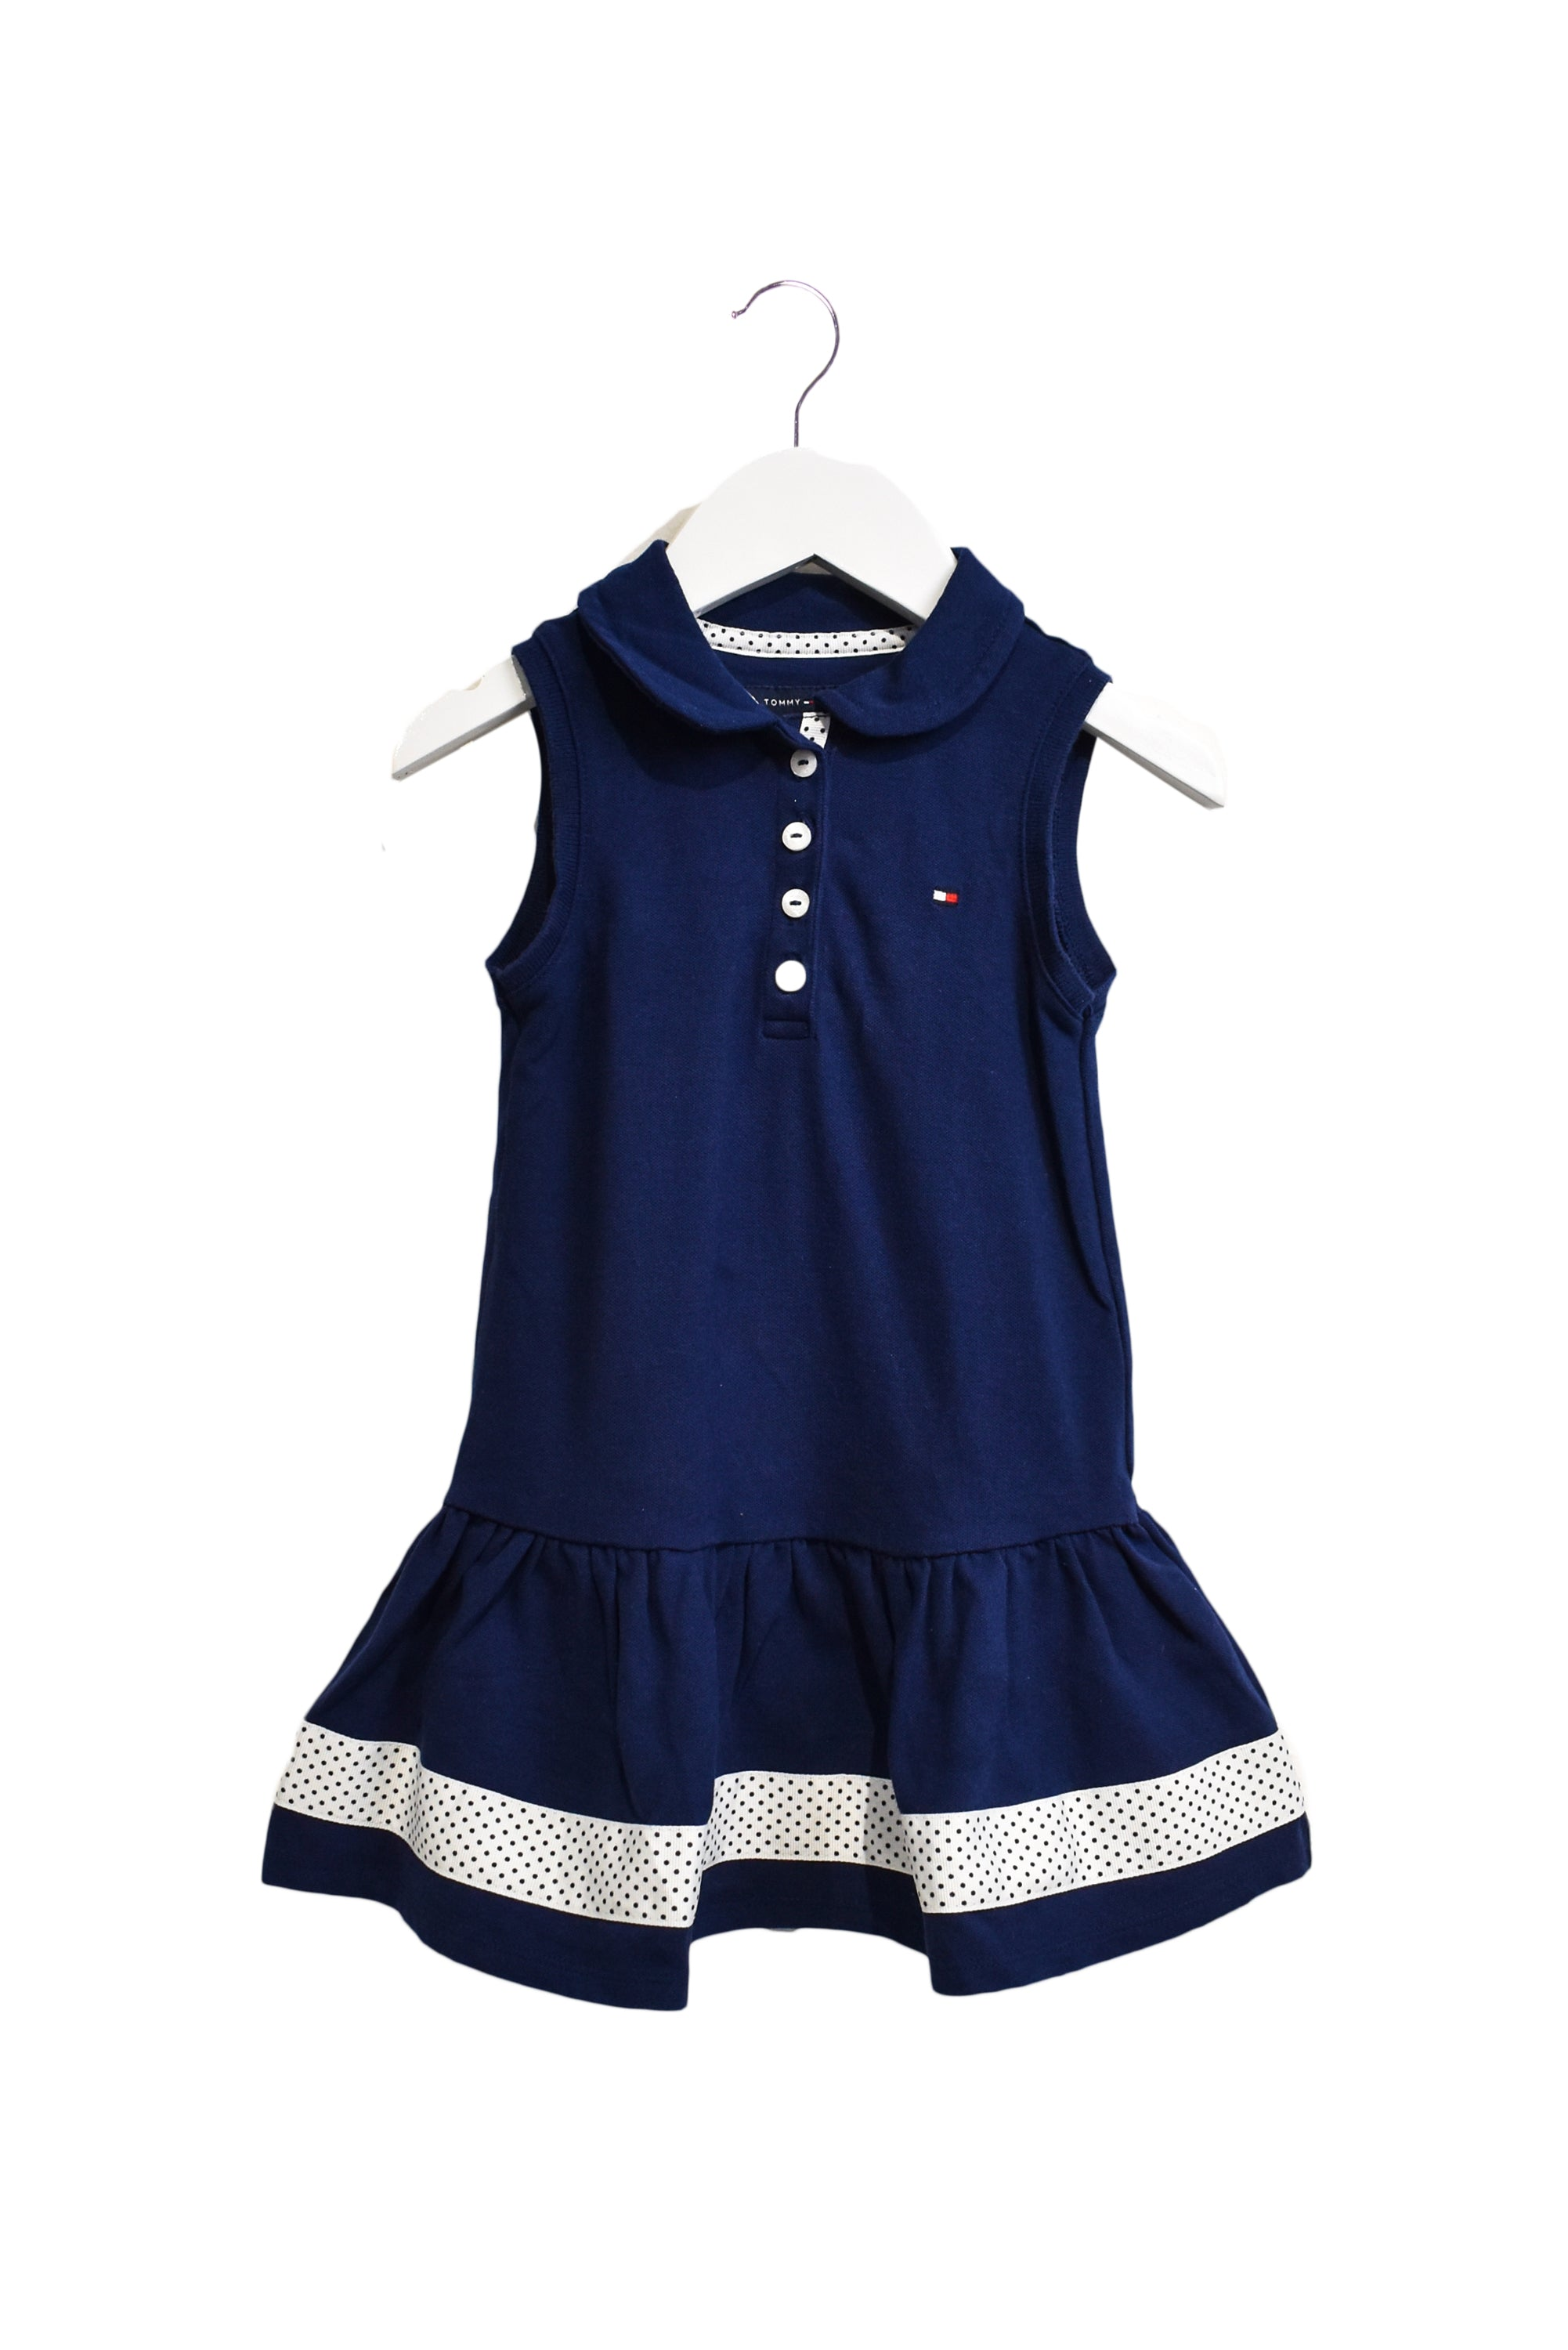 062f0aa5d 10016257 Tommy Hilfiger Kids~Dress and Bloomer 2T at Retykle